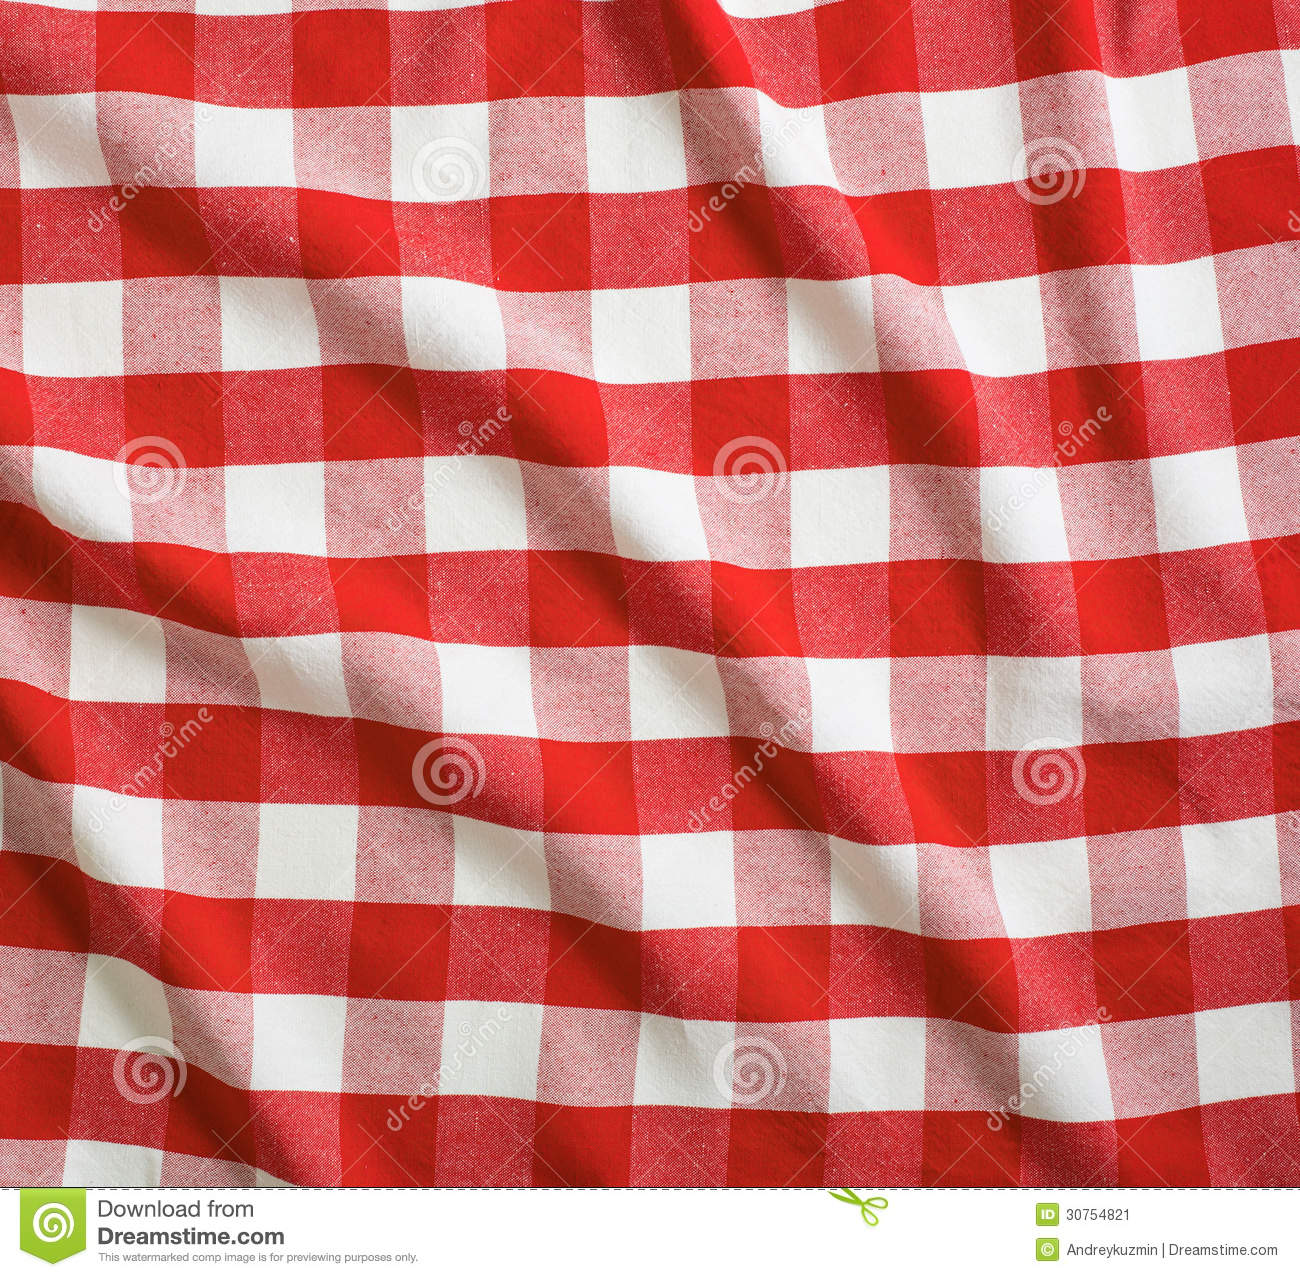 Nappe Bois Et Chiffon : Red and White Picnic Tablecloth